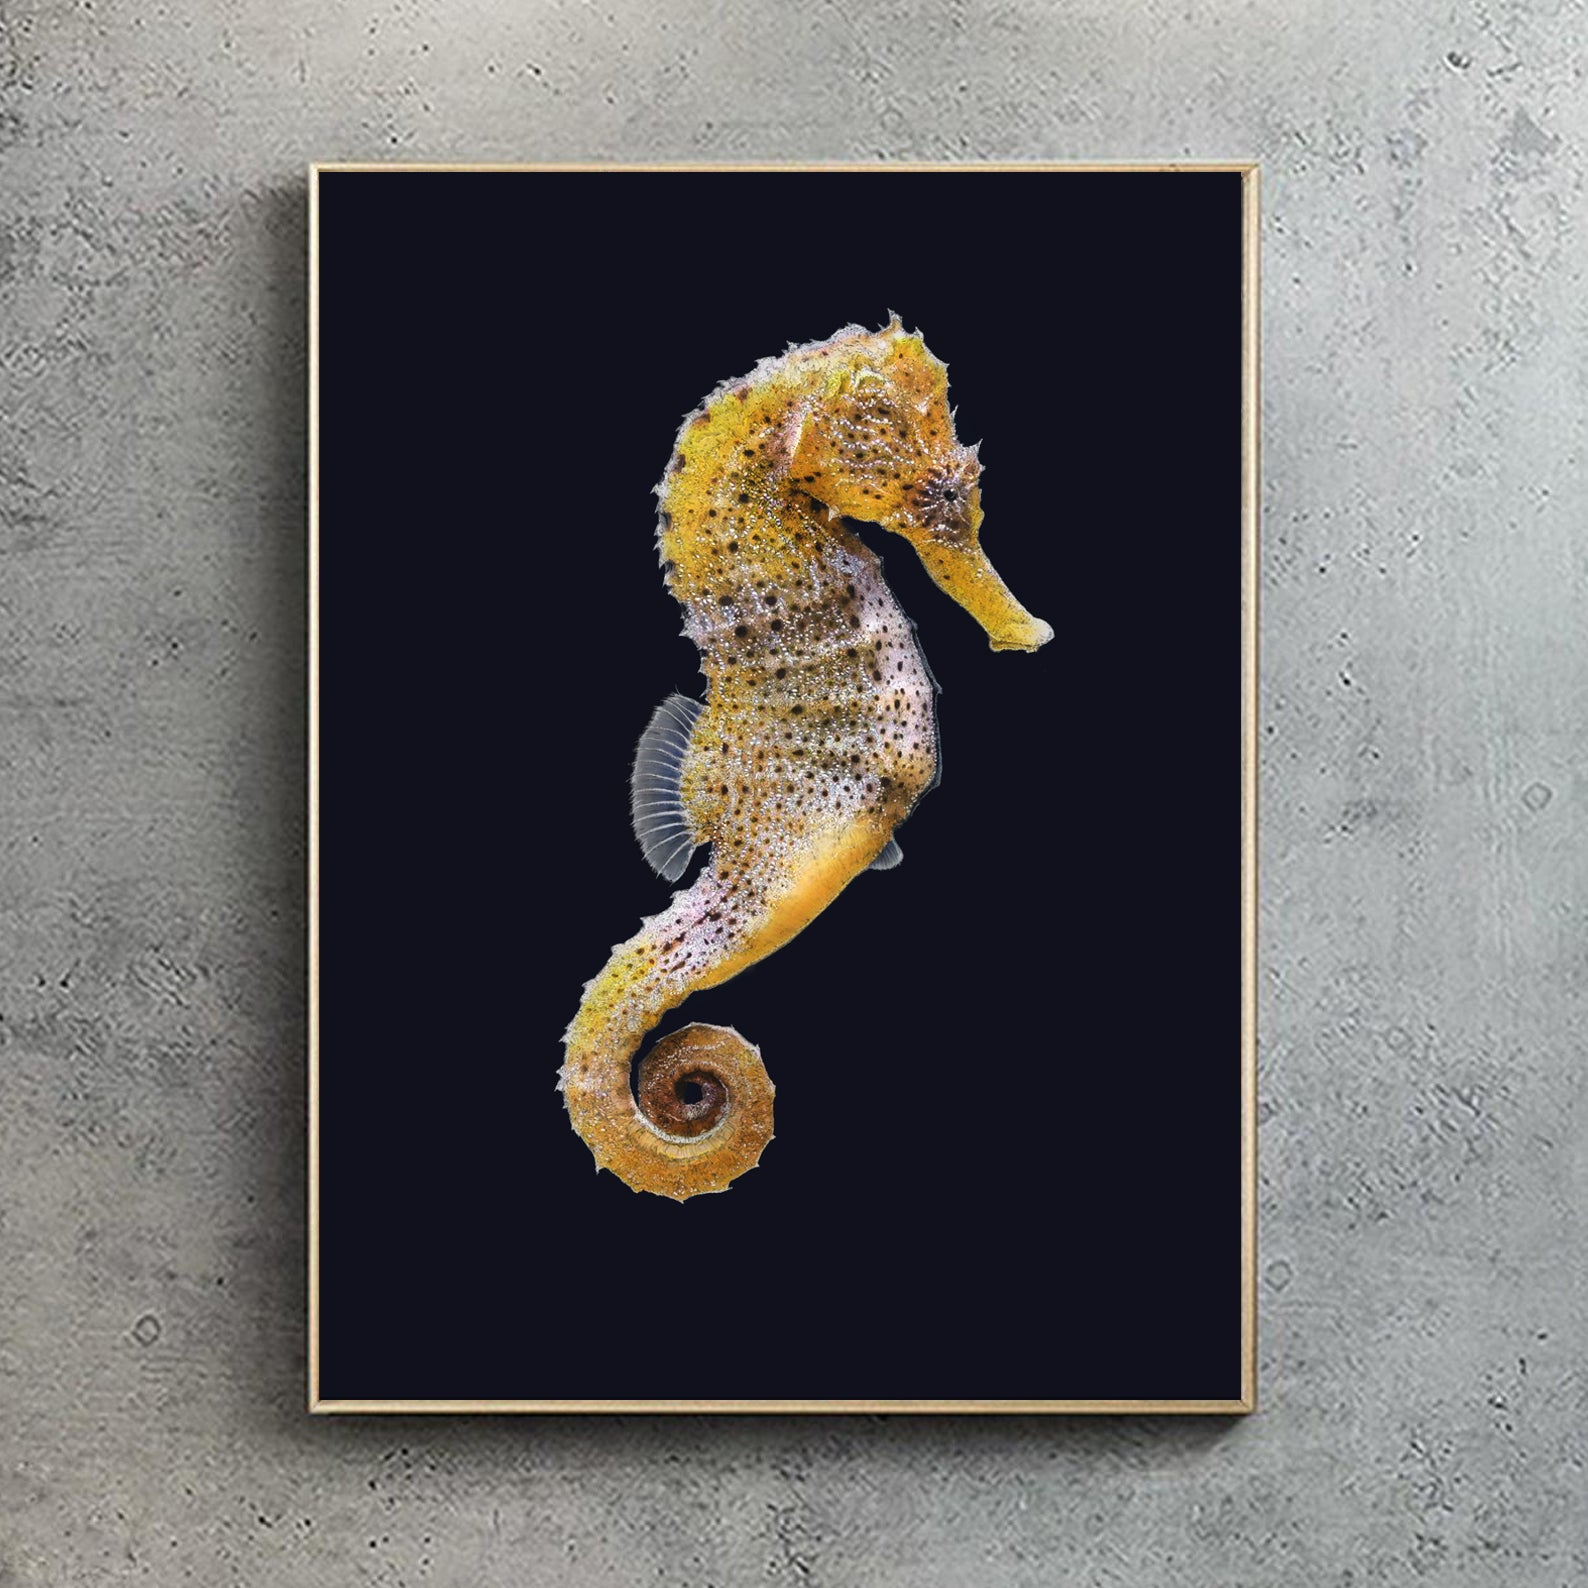 Yellow Seahorse (Artists proof)